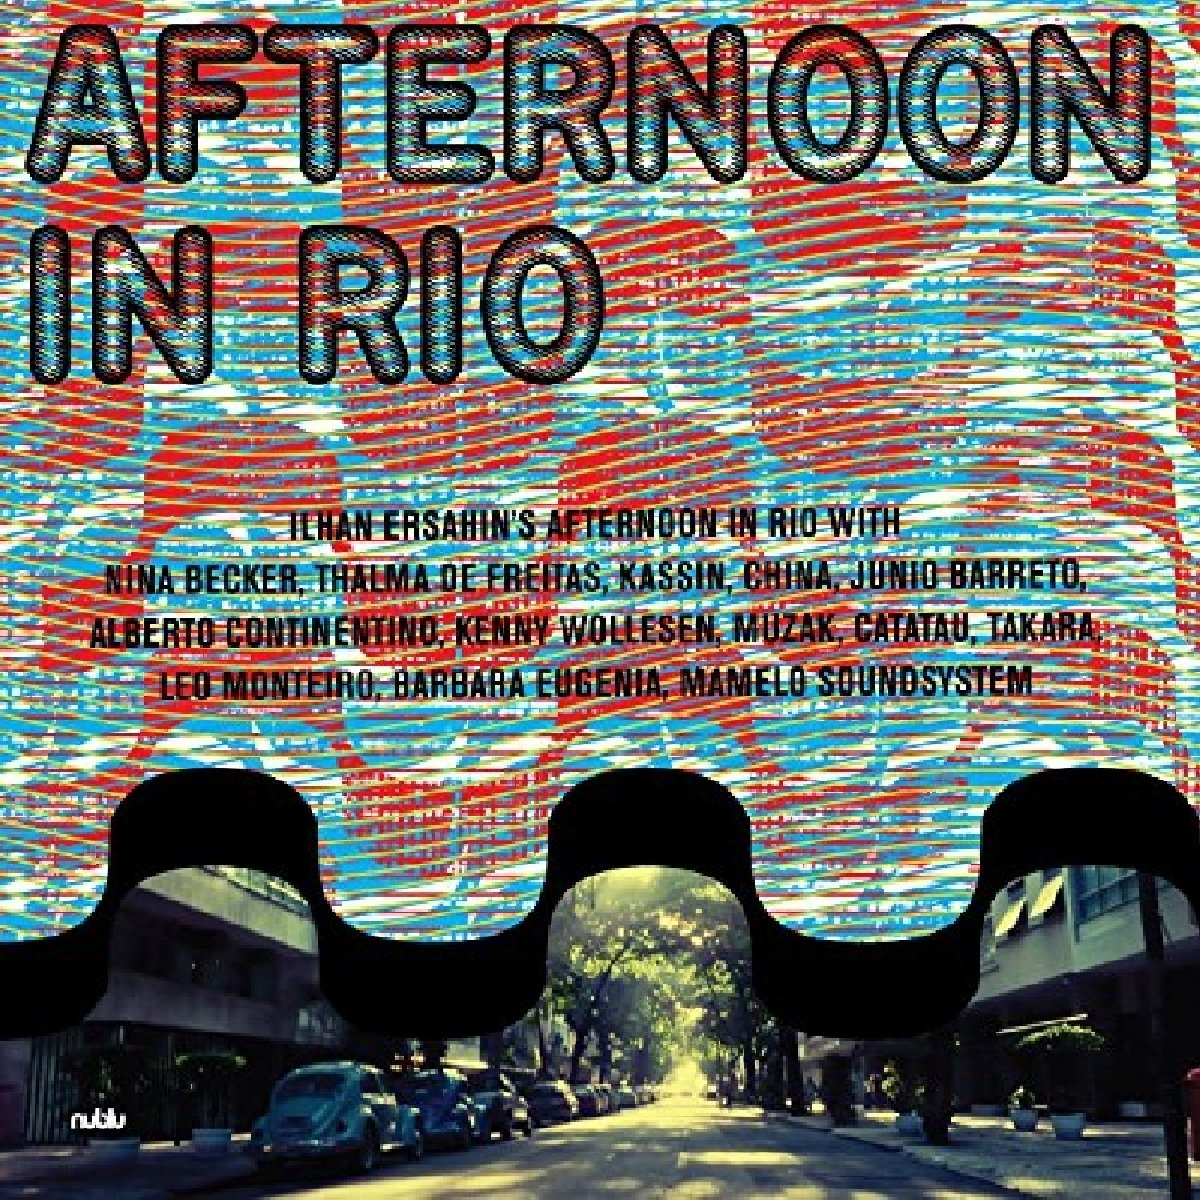 İlhan Erşahin Afternoon in Rio